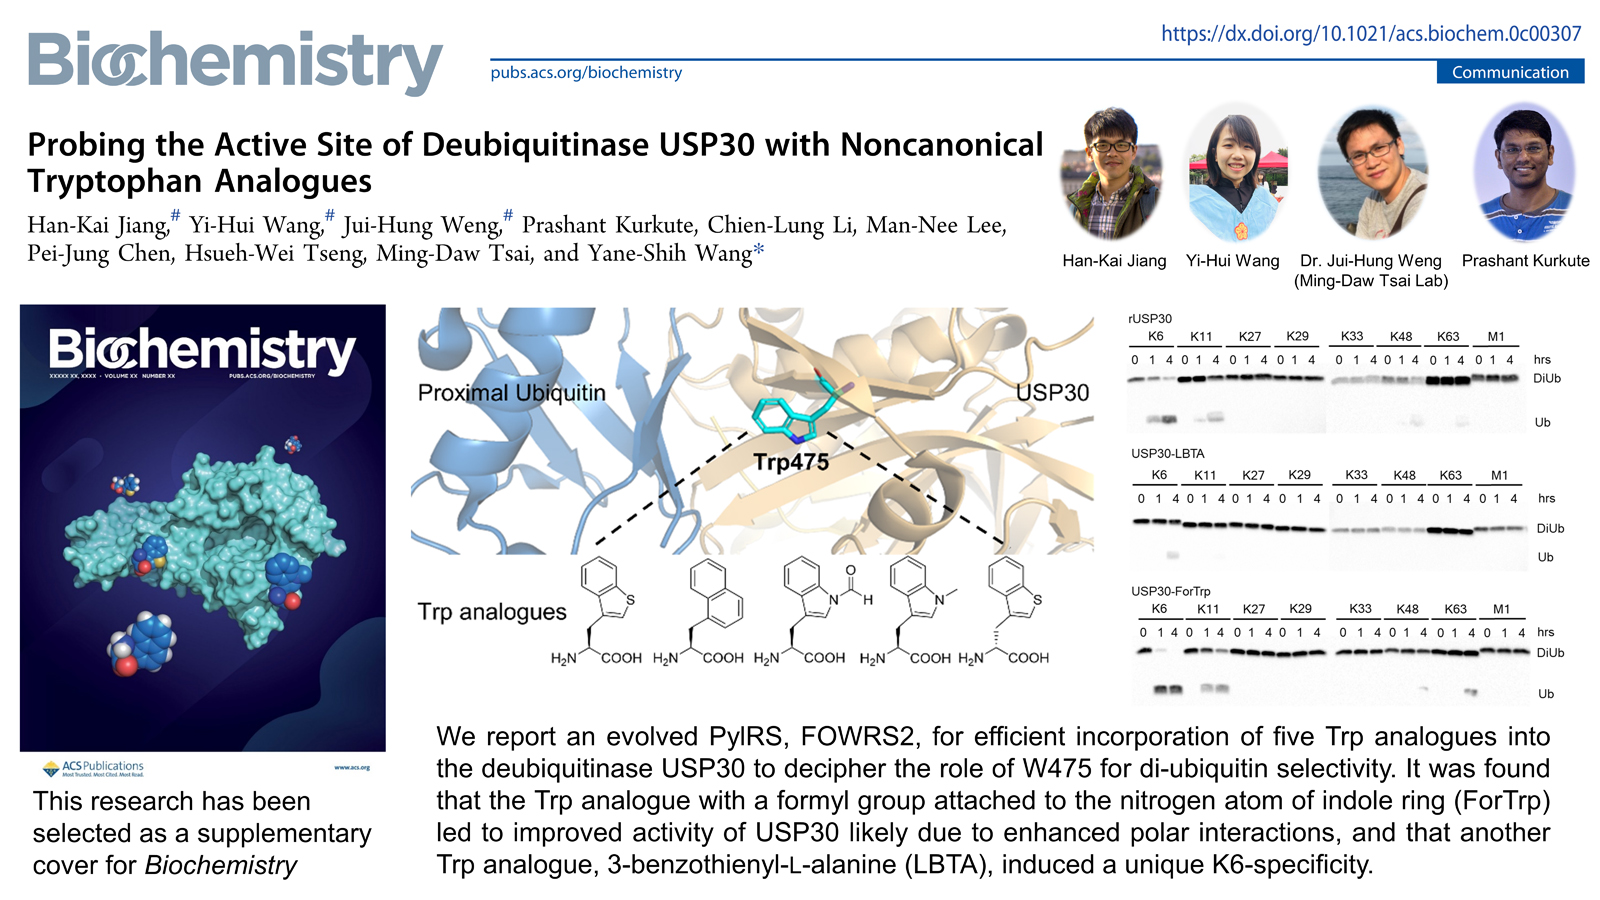 Probing the Active Site of Deubiquitinase USP30 With Noncanonical Tryptophan Analogues